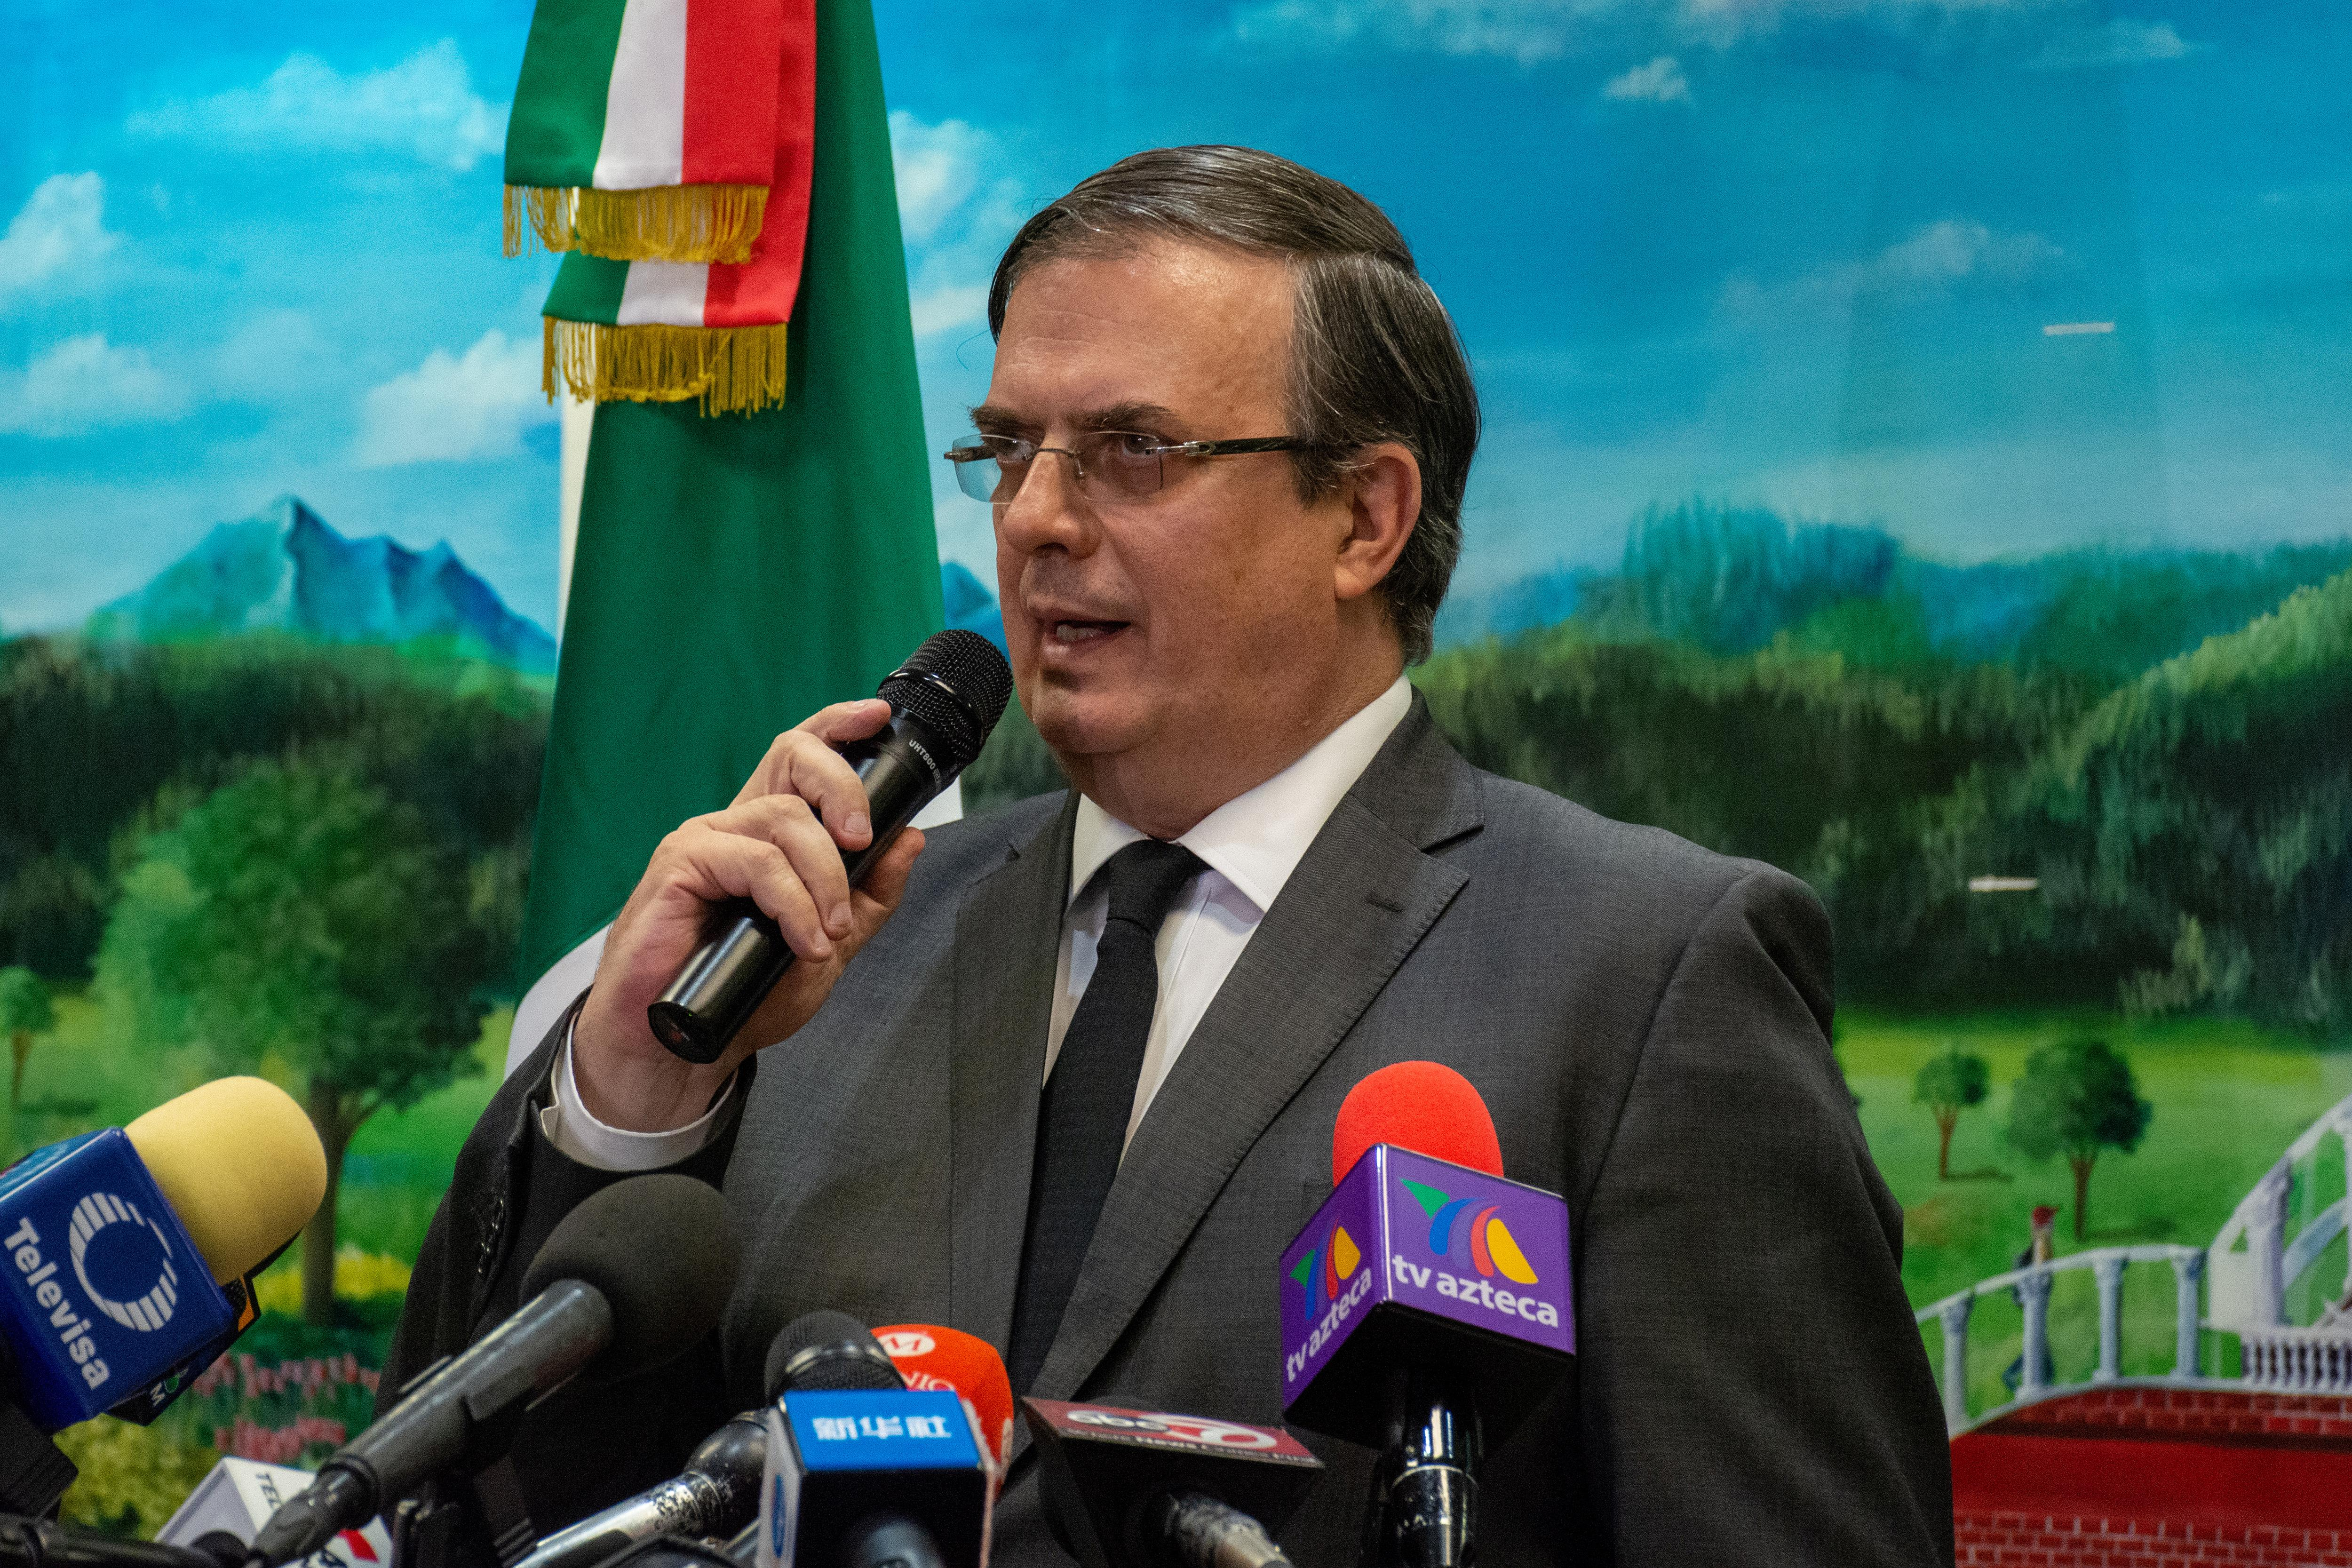 Mexico to press U.S. on halting illegal flow of weapons: Ebrard